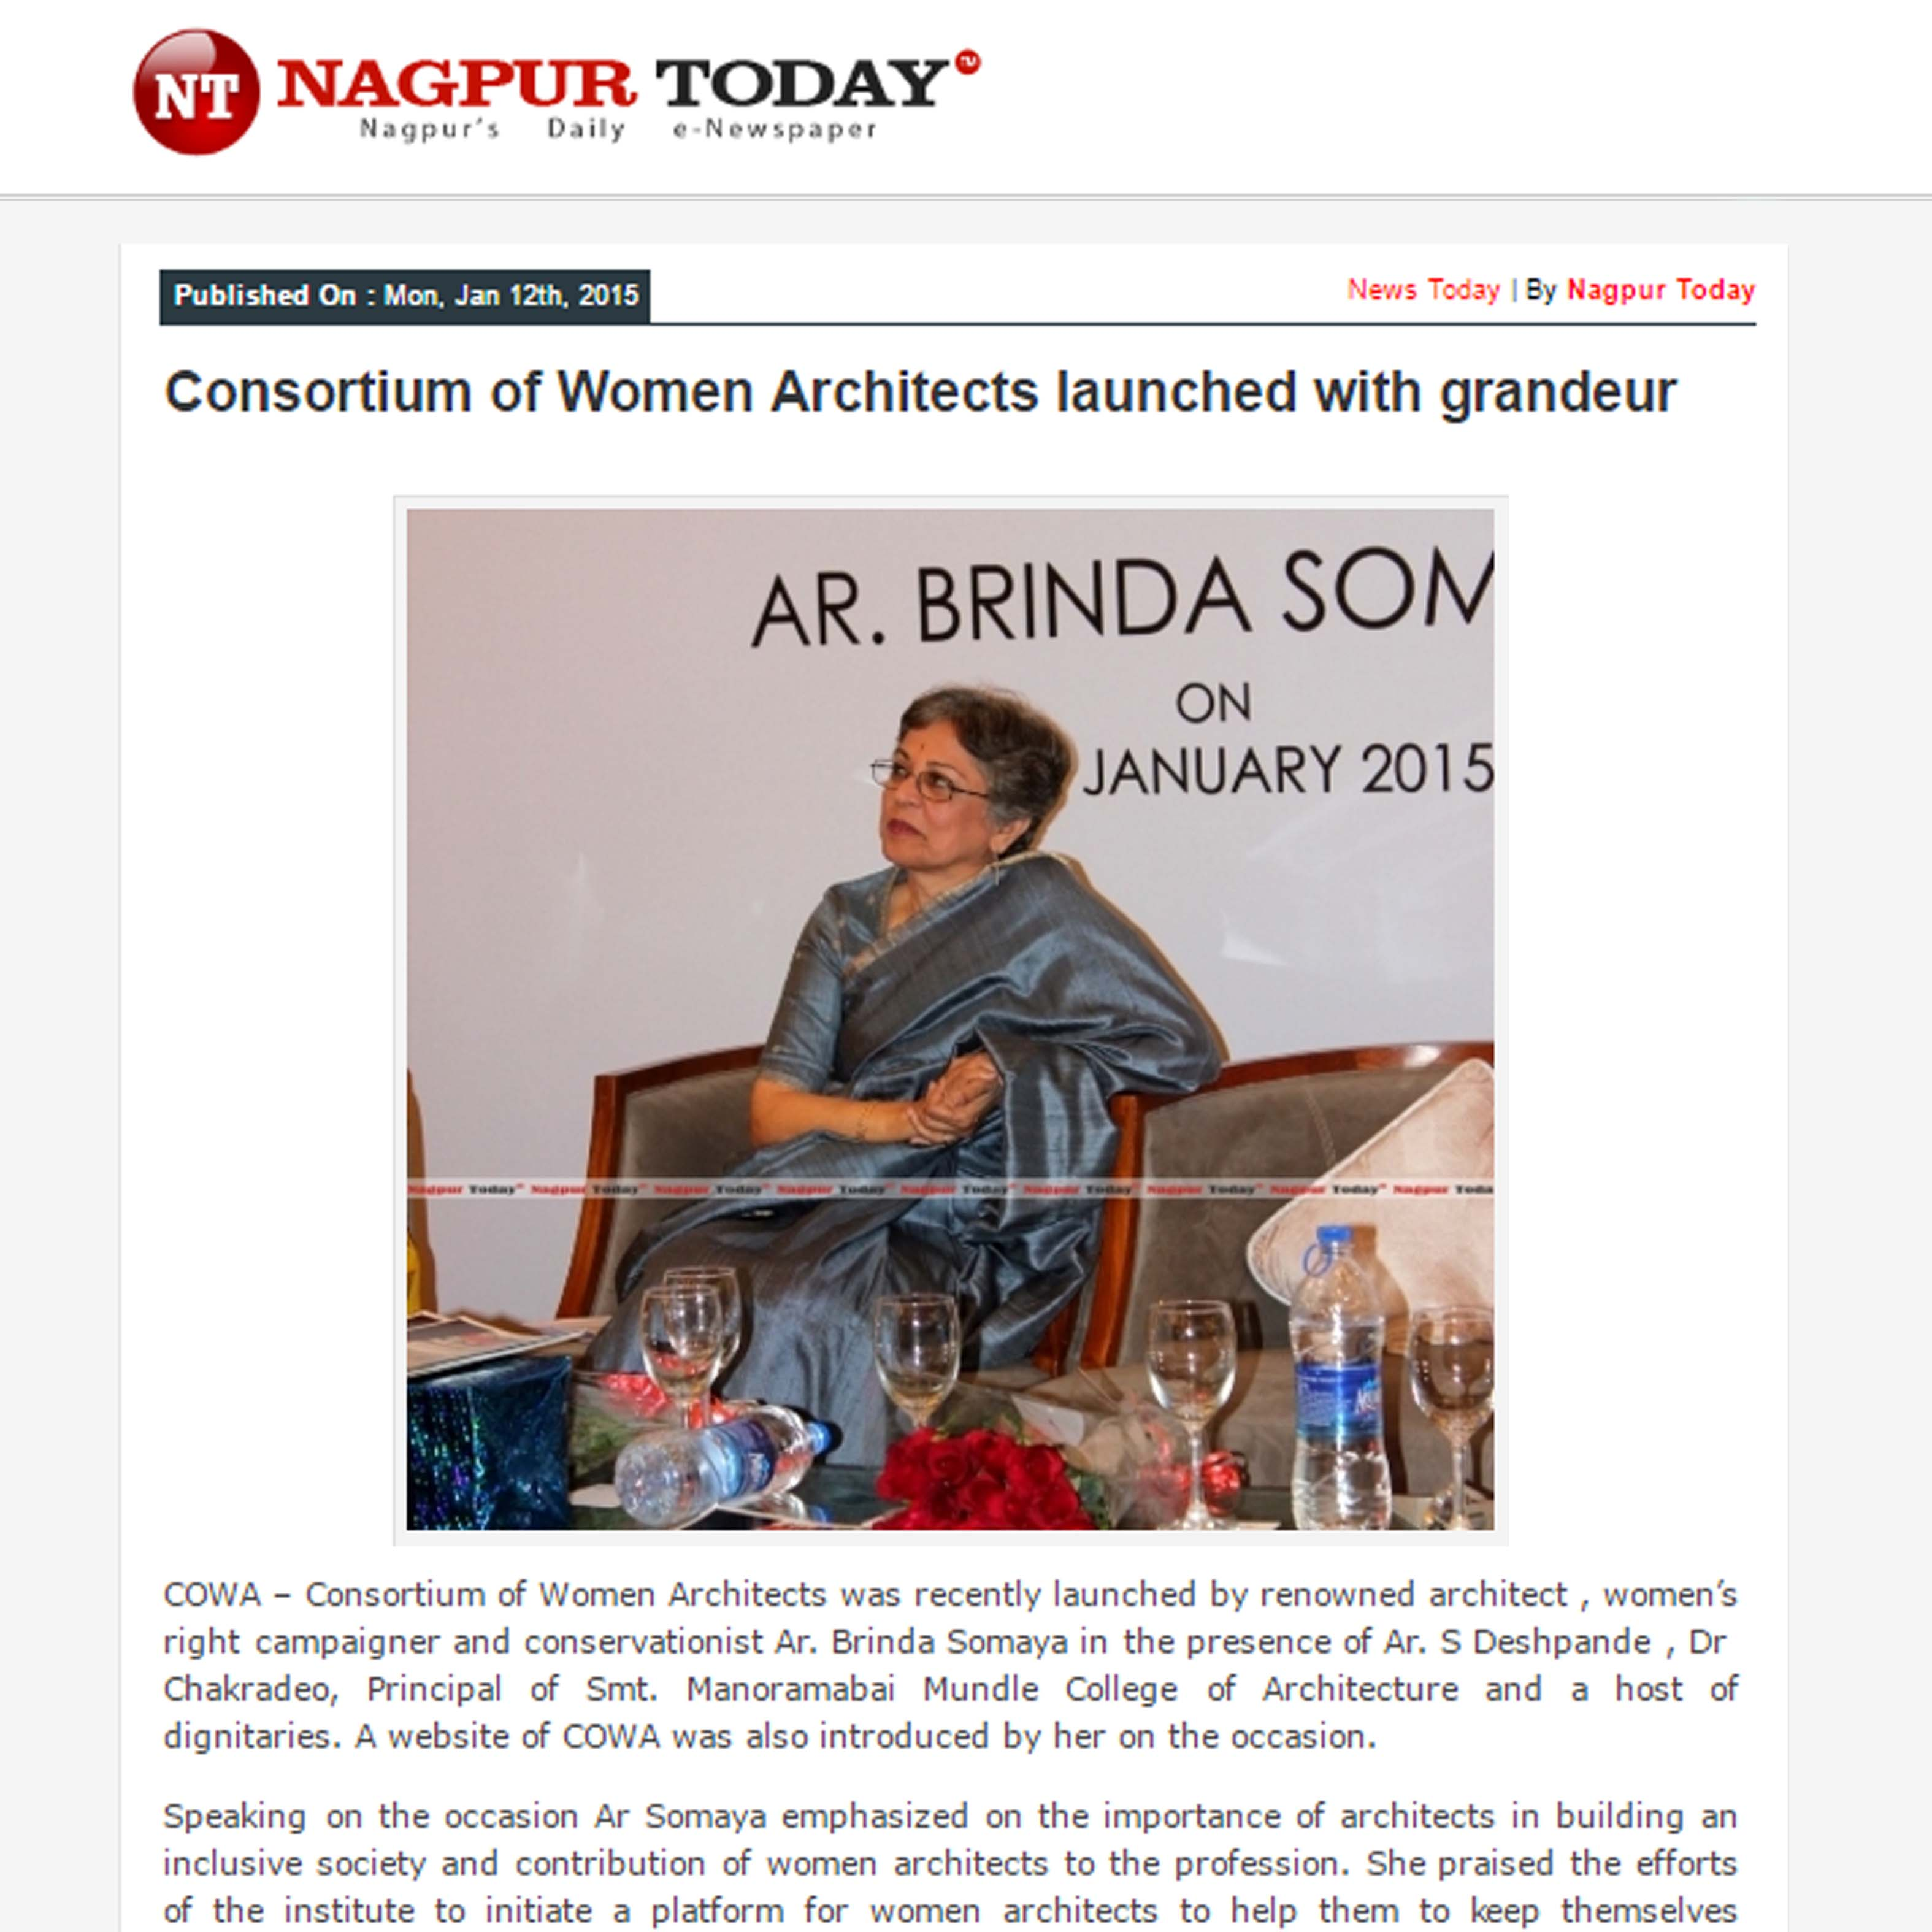 Consortium of Women Architects launched with grandeur, Nagpur Today, 12th January 2015